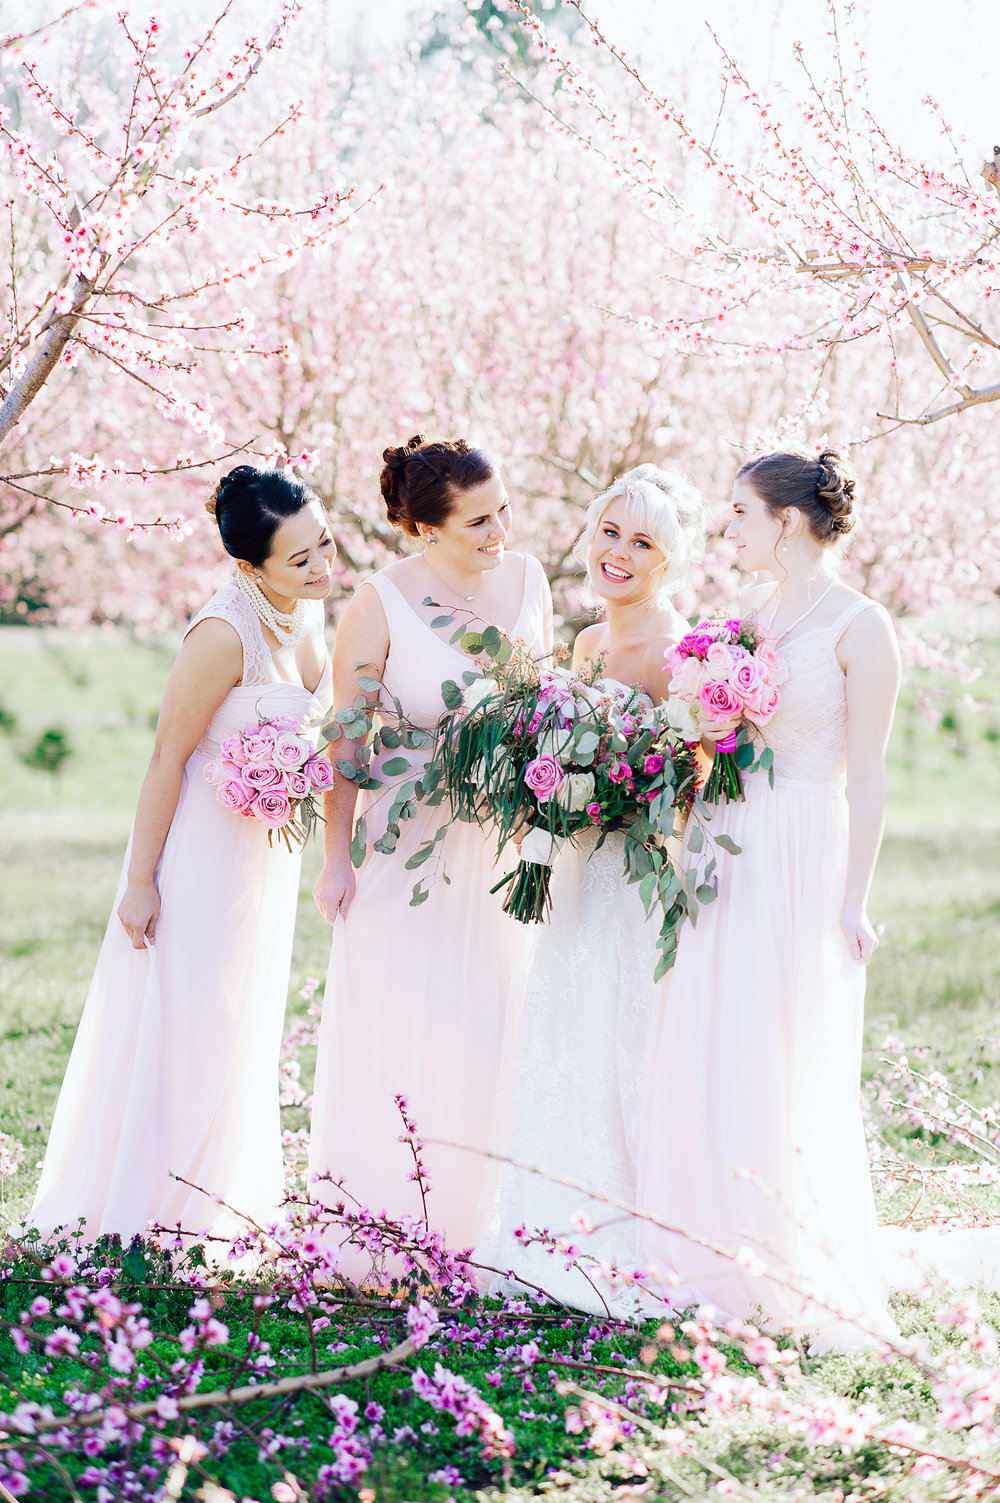 youseephotography_virginia_styledshoot_springwedding_blossoms  (50).jpg